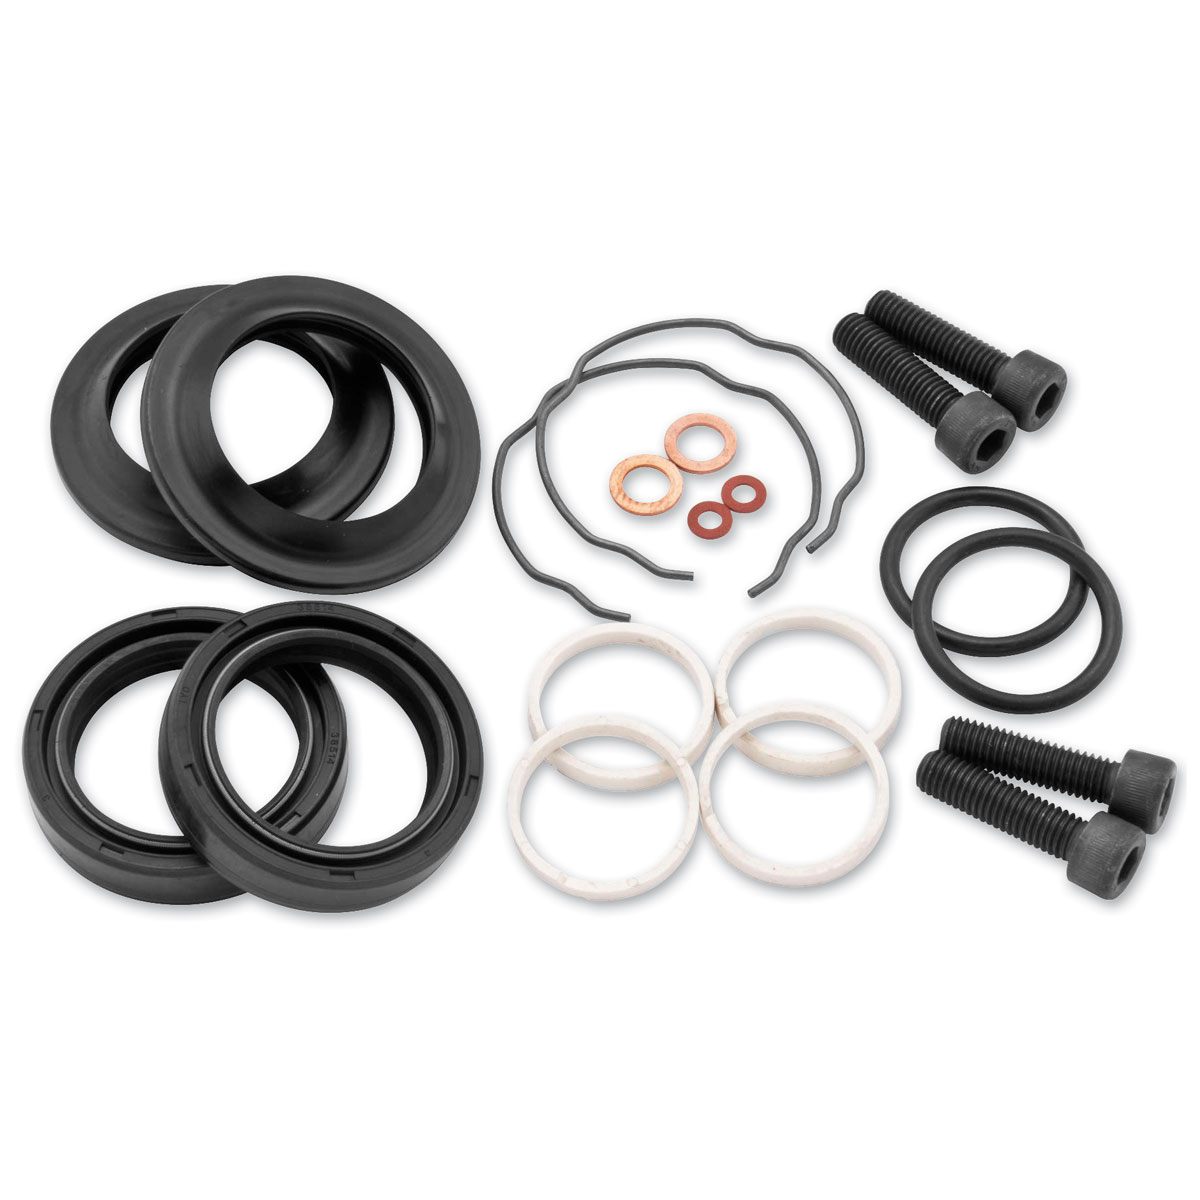 Biker's Choice 39mm Fork Seal Kit